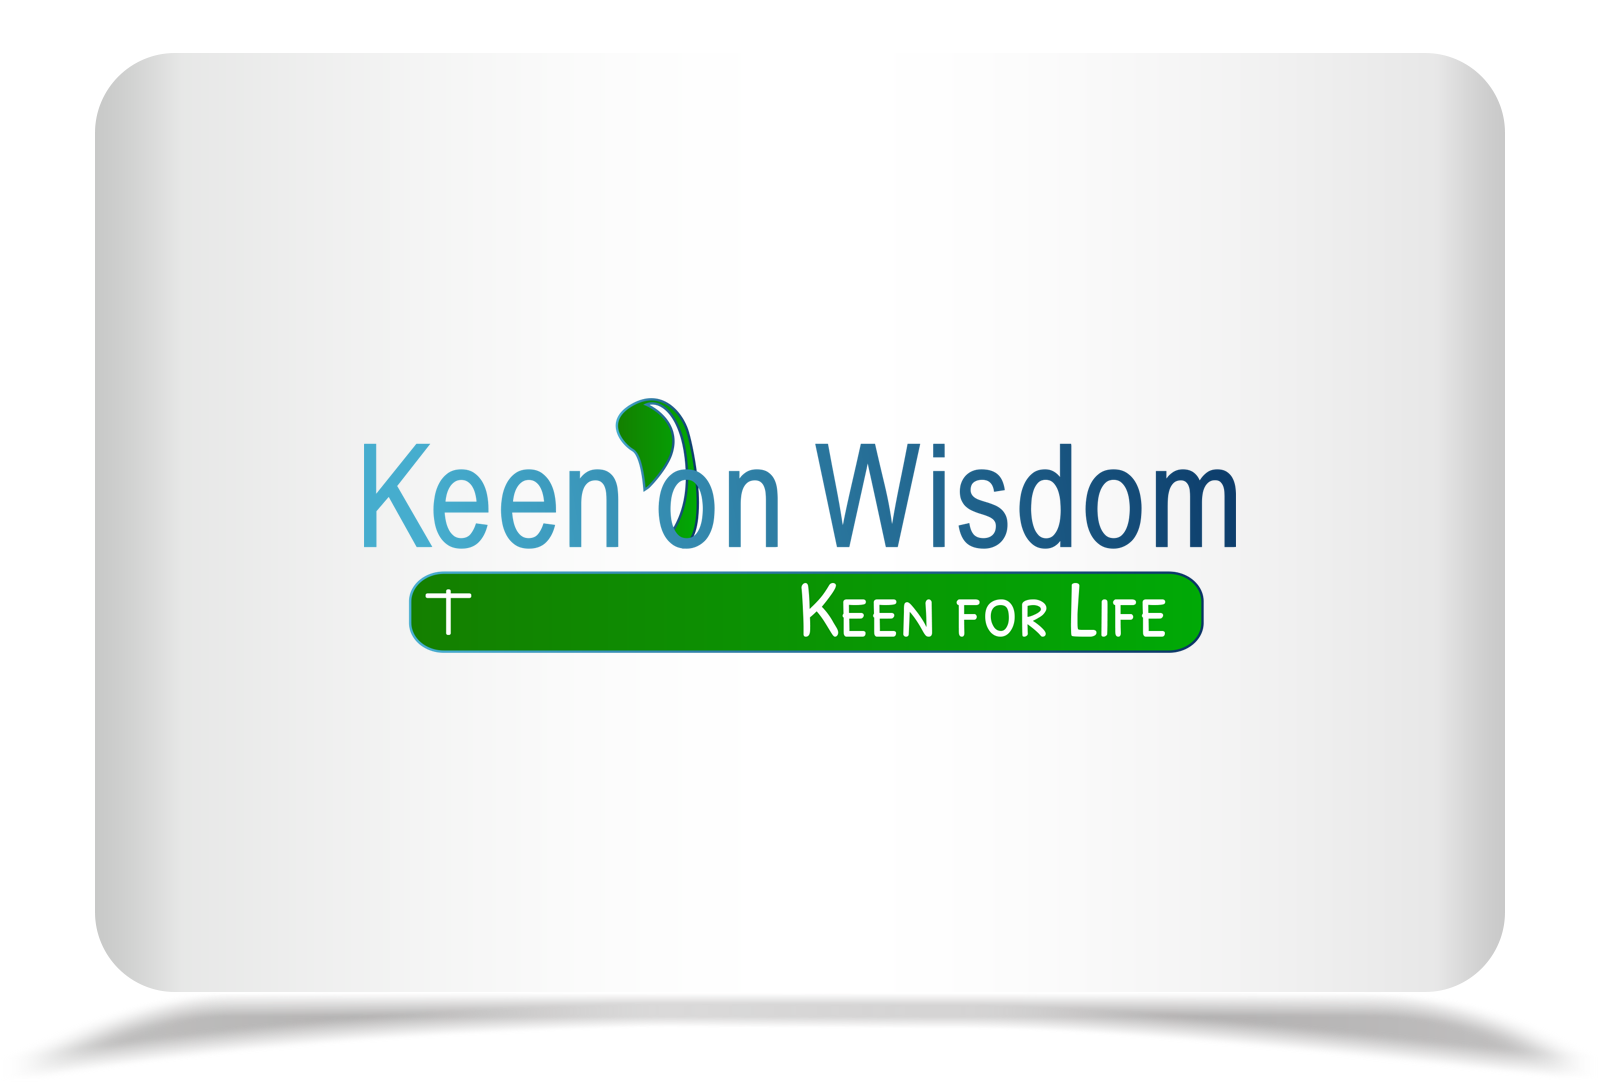 Logo Design by Rozsa Matyas - Entry No. 29 in the Logo Design Contest Logo Design for Keen on Wisdom, Keen for Life, Keen 4 Life.